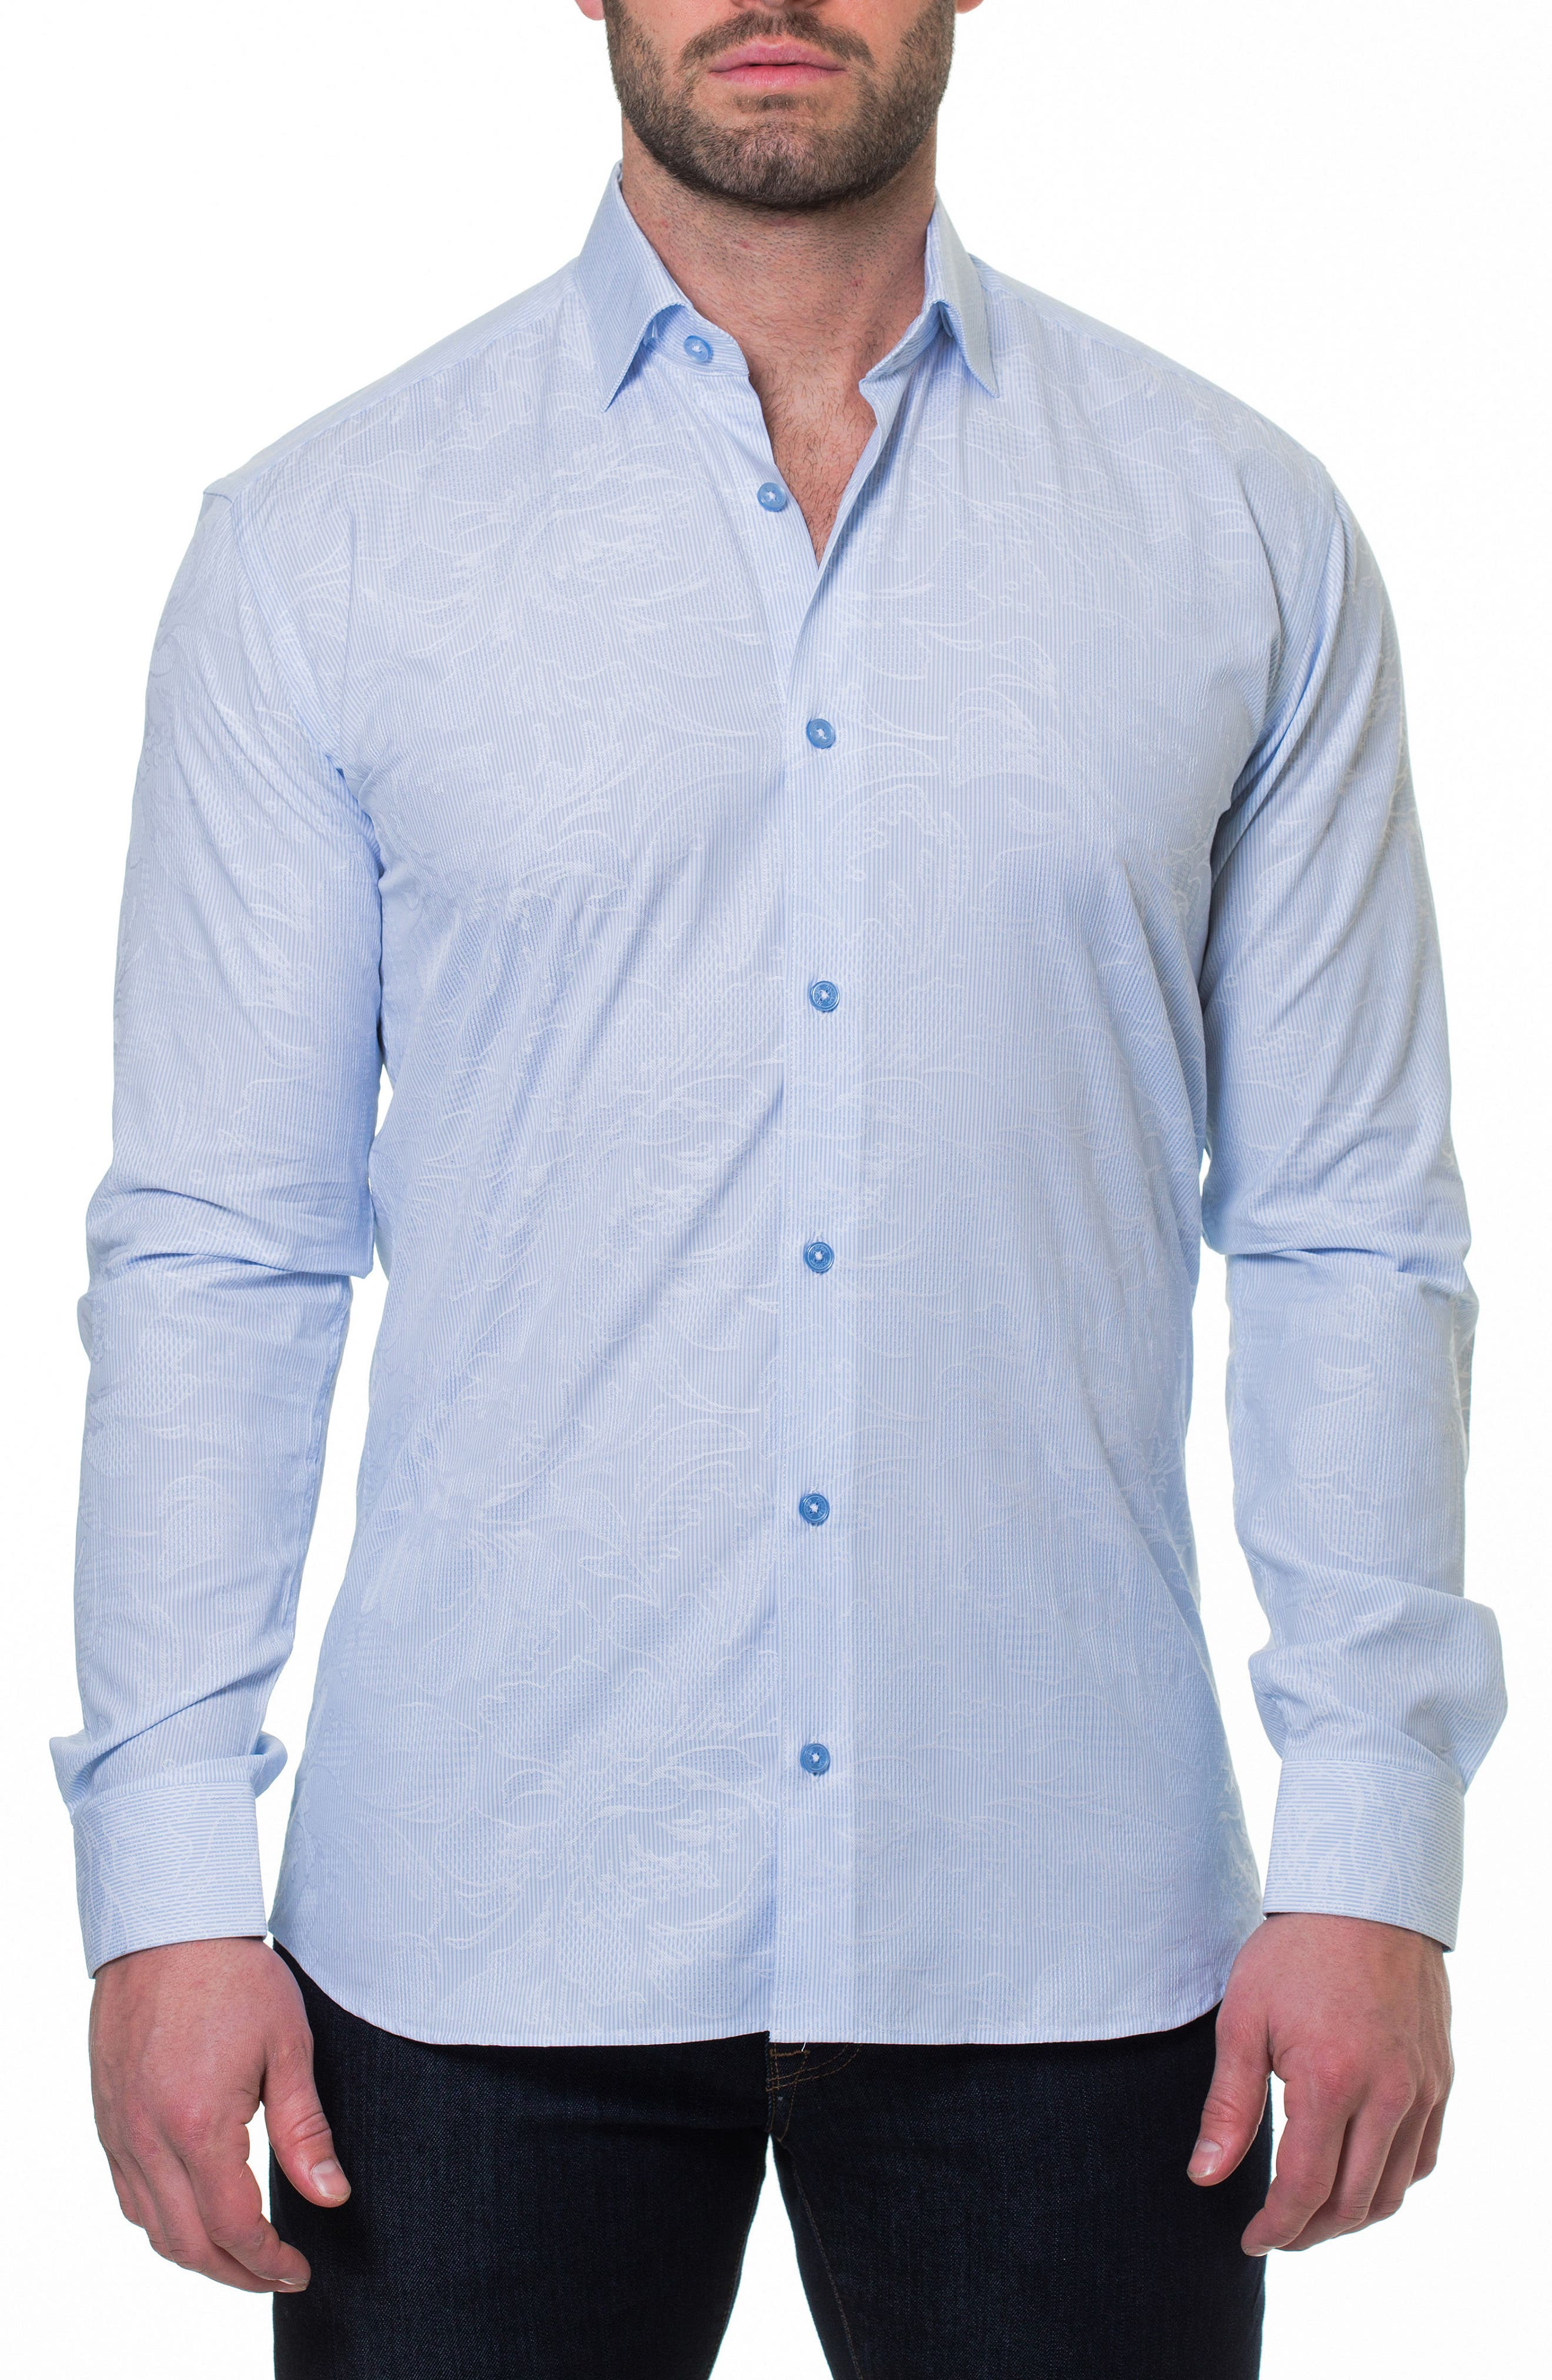 Luxor Flow Sport Shirt,                             Alternate thumbnail 4, color,                             420